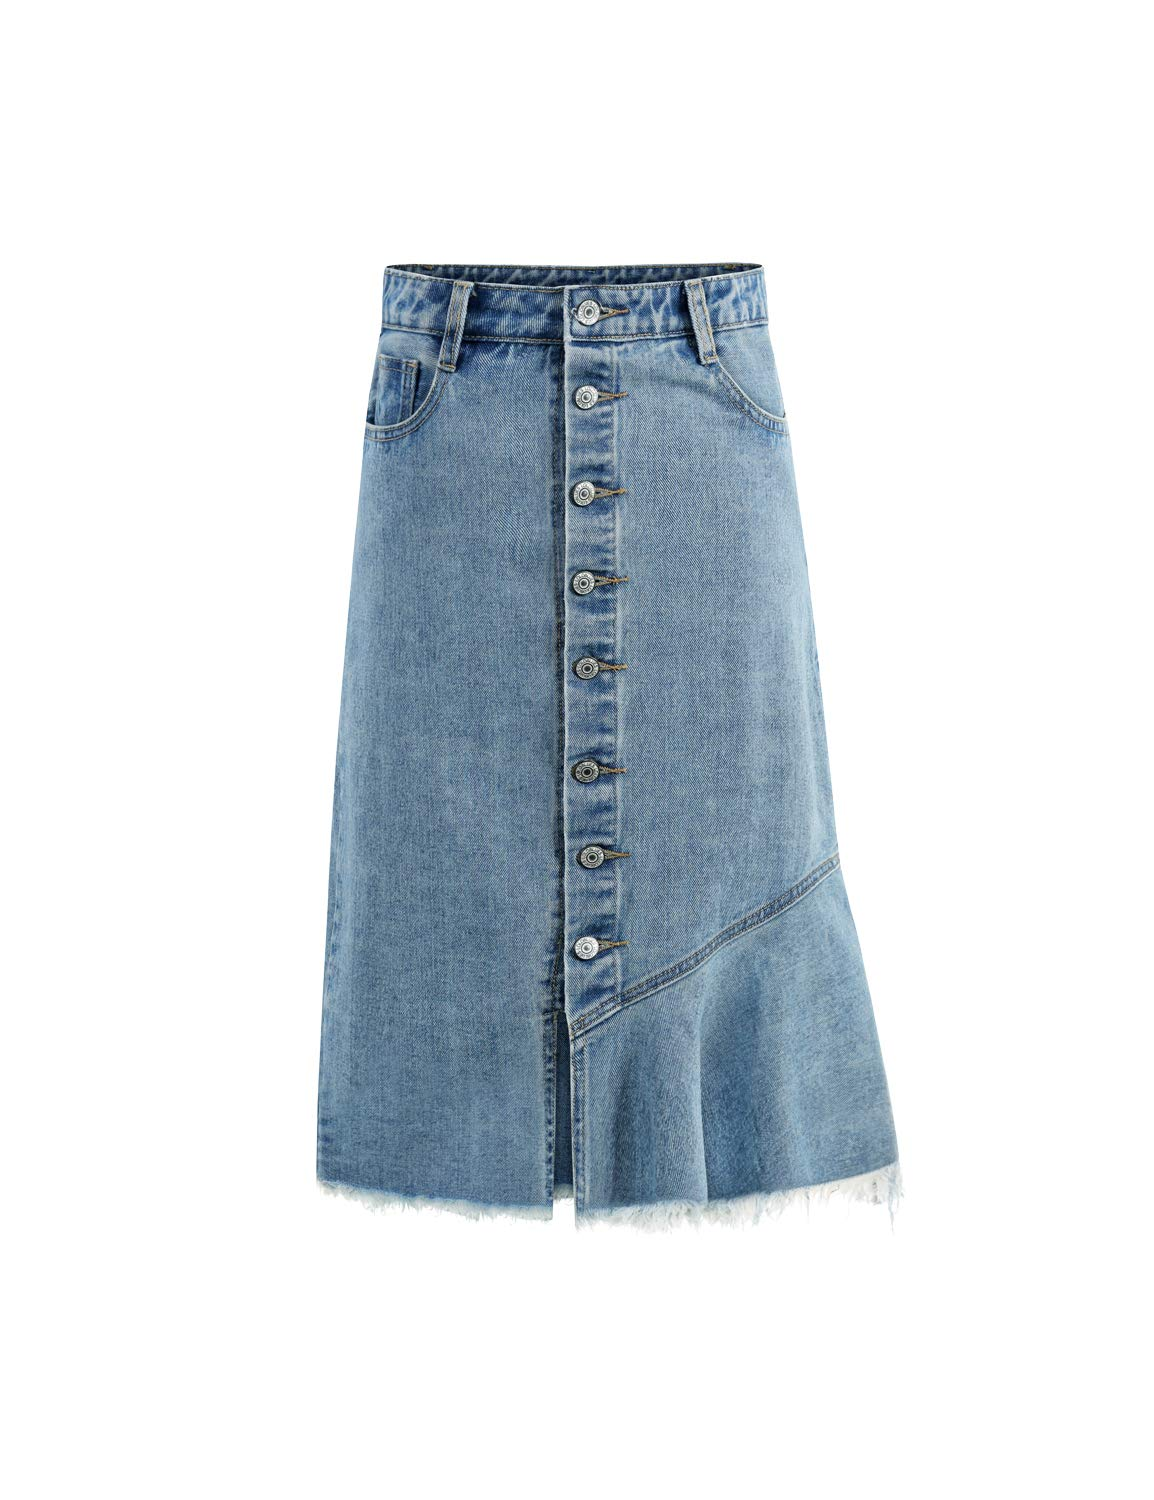 Can look blue jean skirt can consult